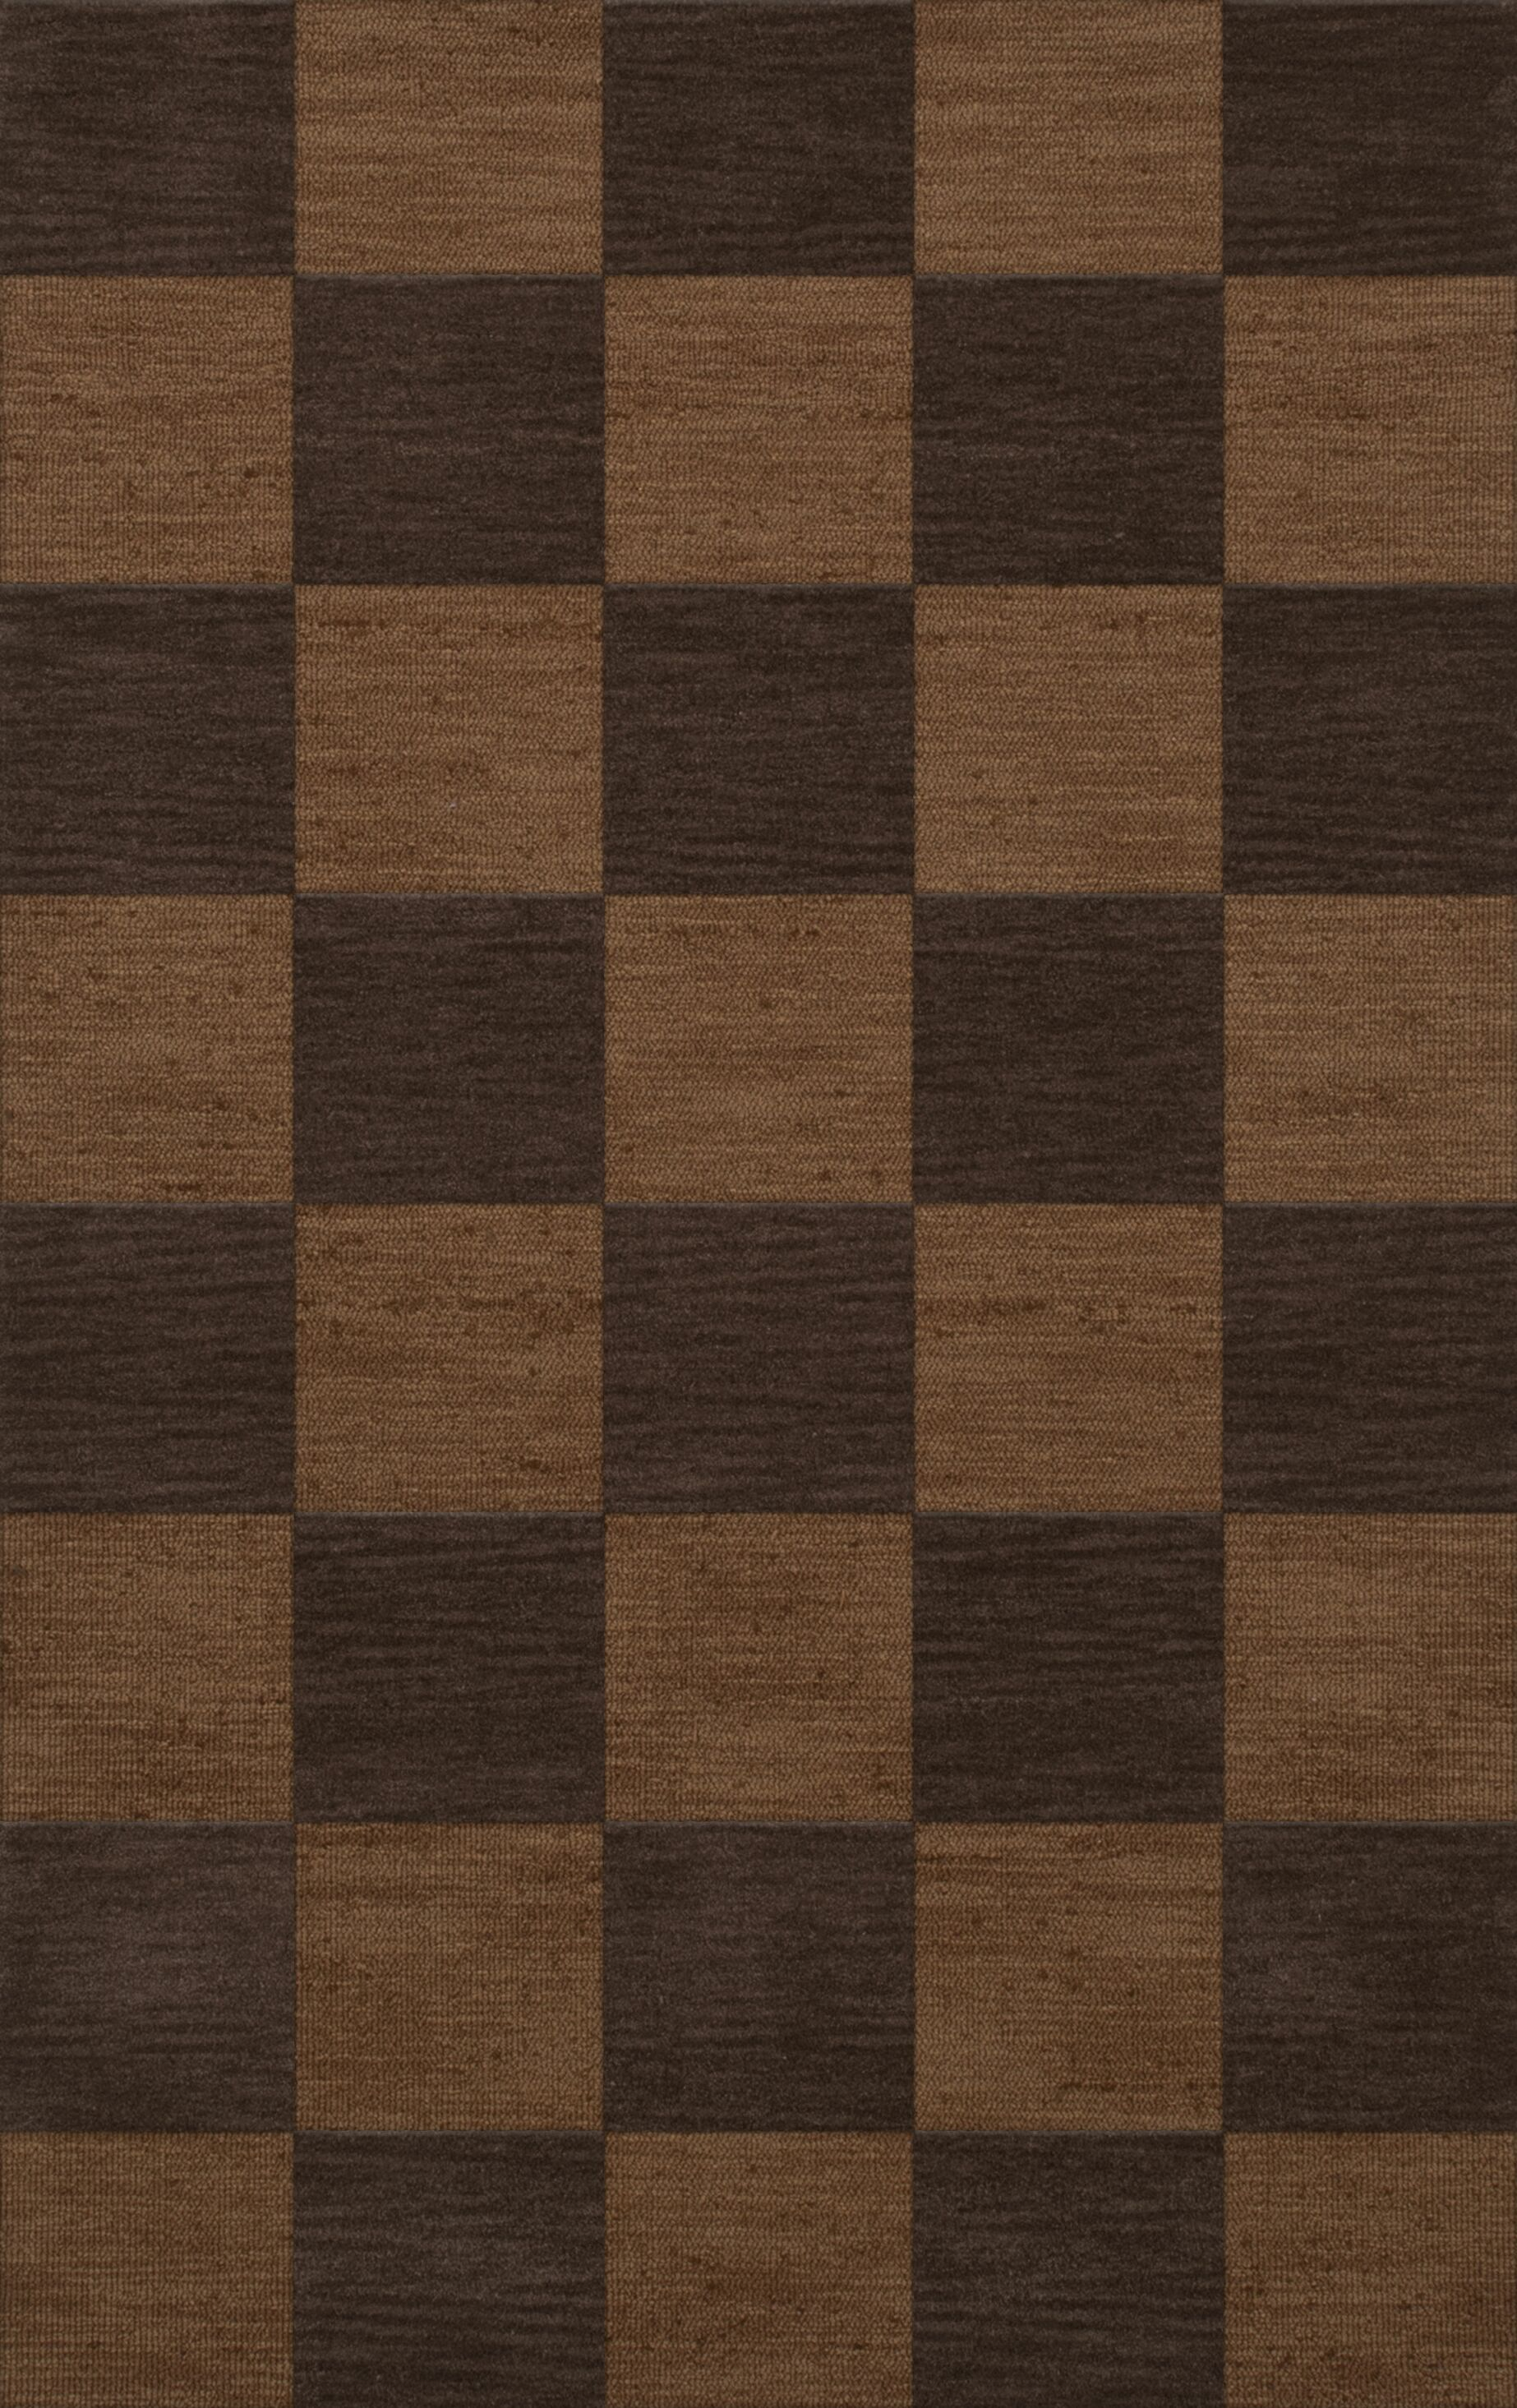 Dover Tufted Wool Caramel Area Rug Rug Size: Rectangle 9' x 12'